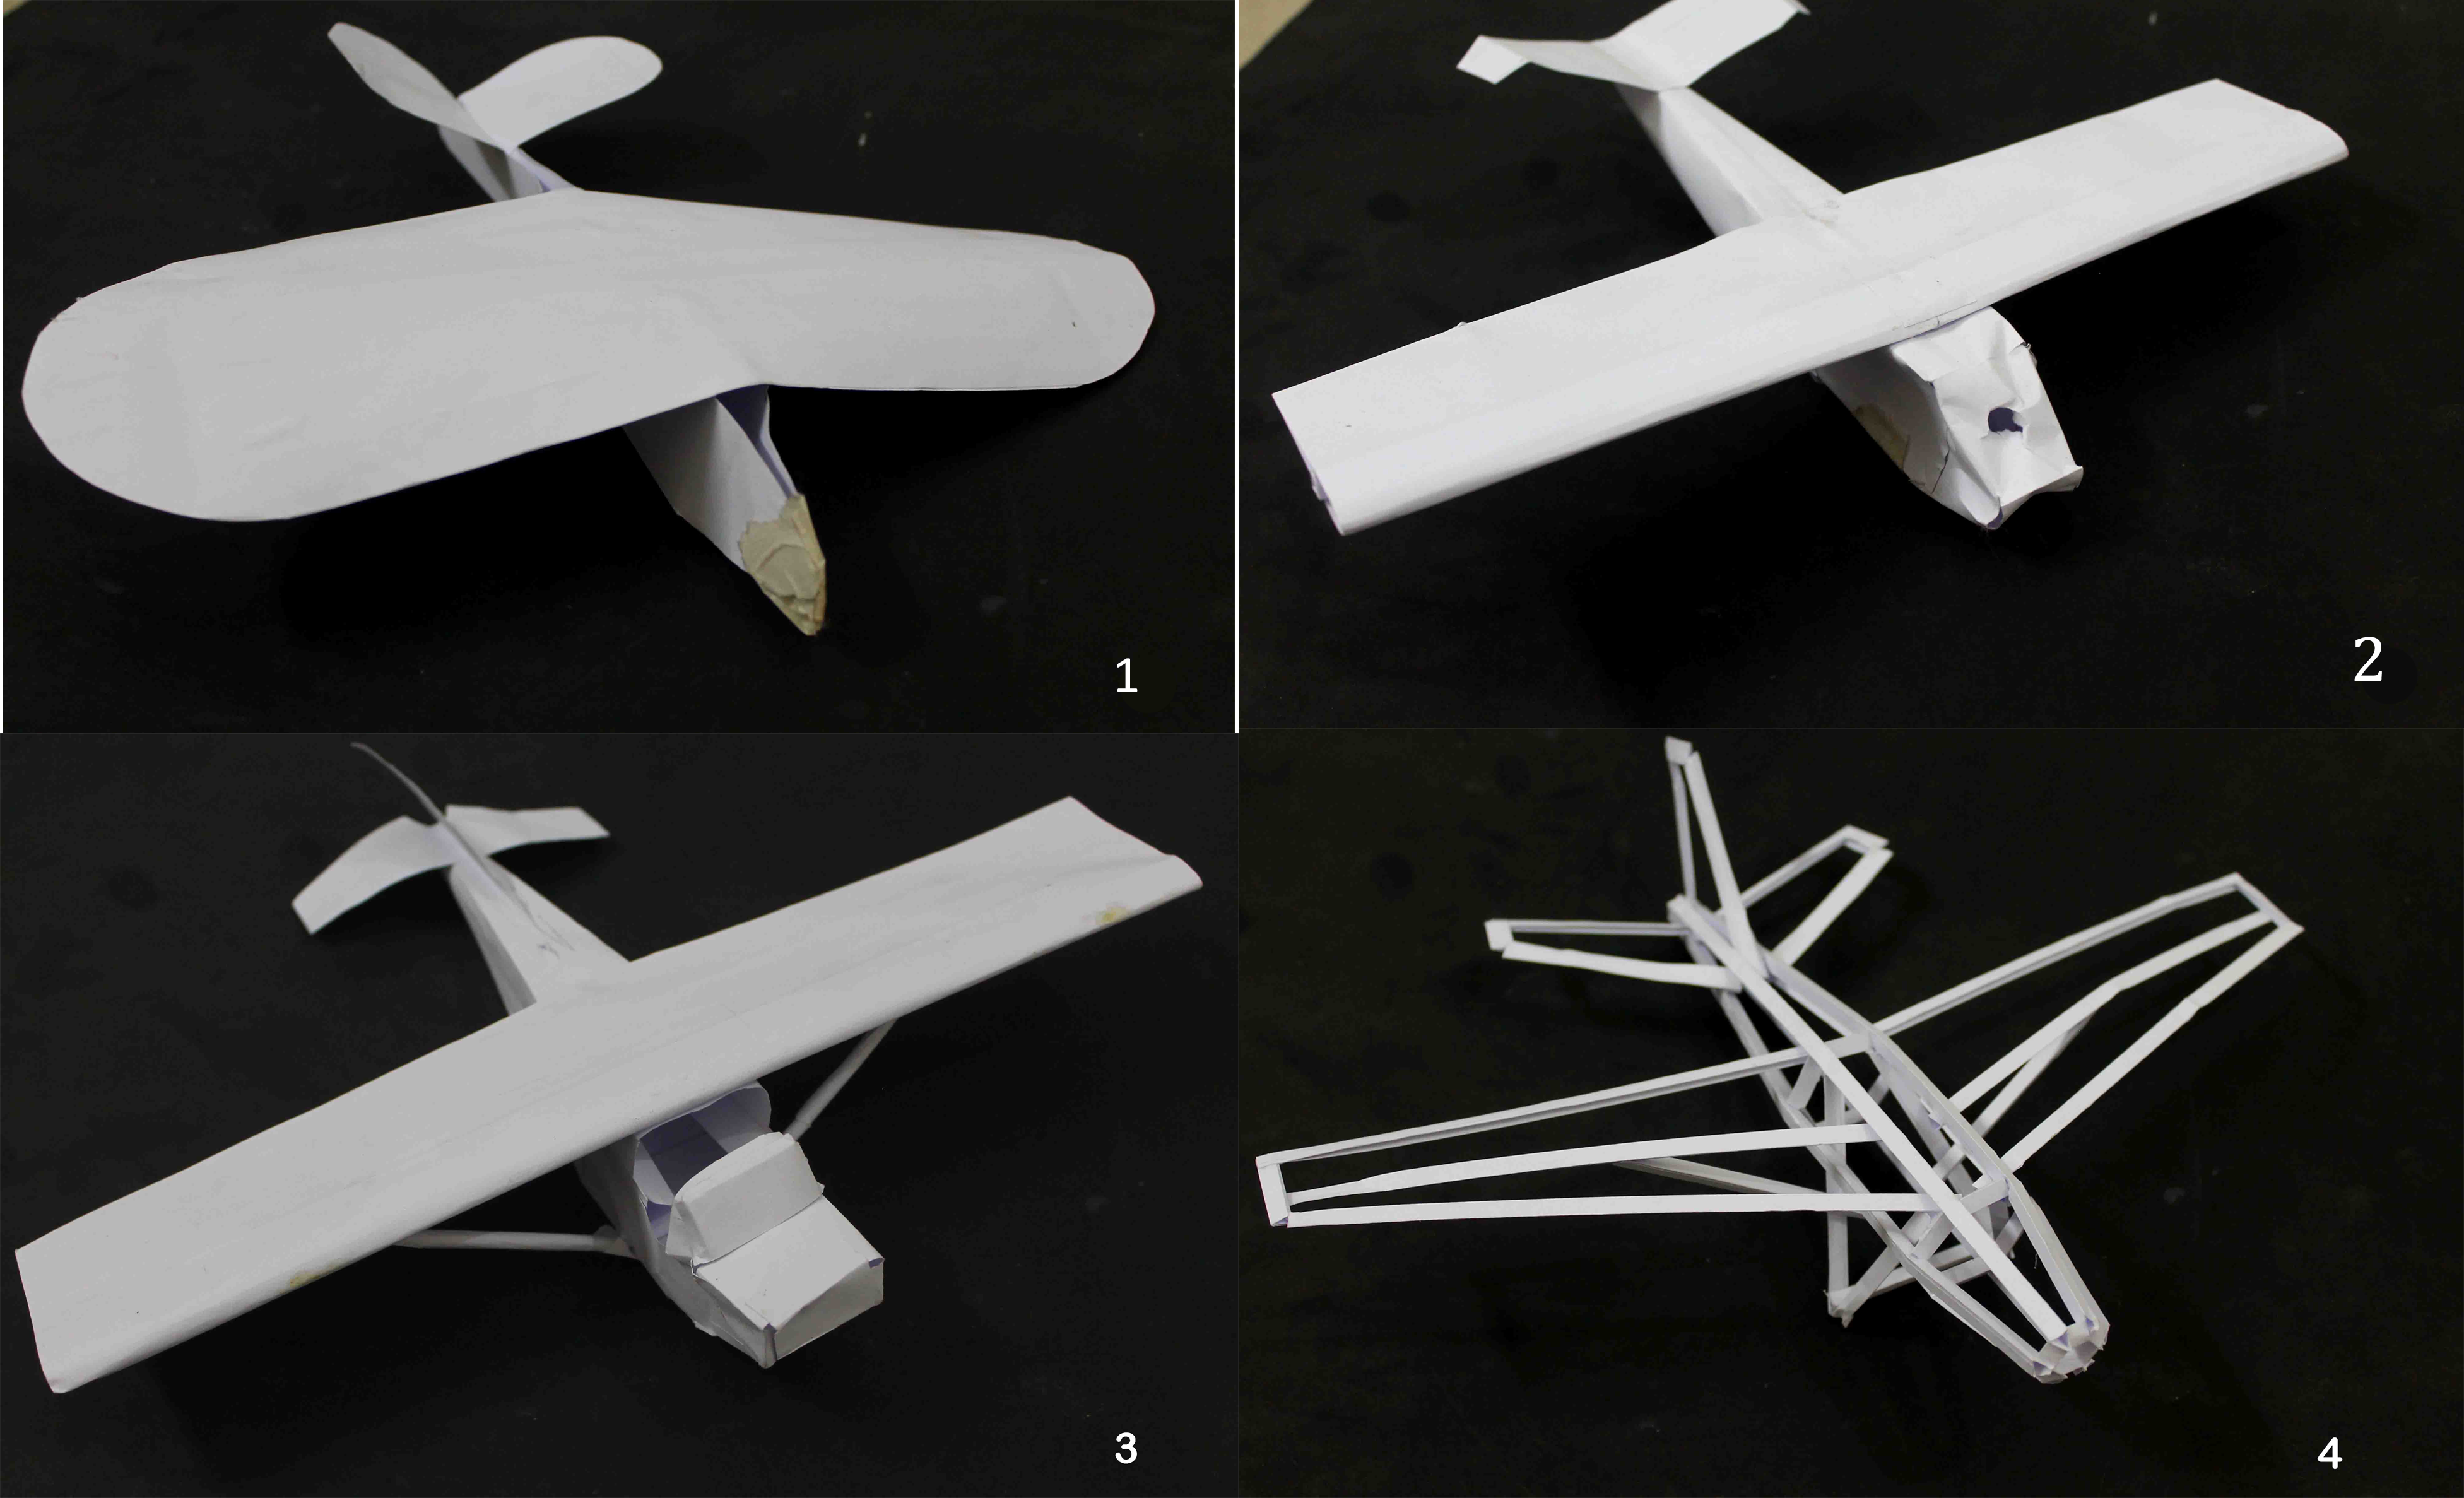 COMPLETELY PAPER MADE RC AIRPLANE | Flite Test